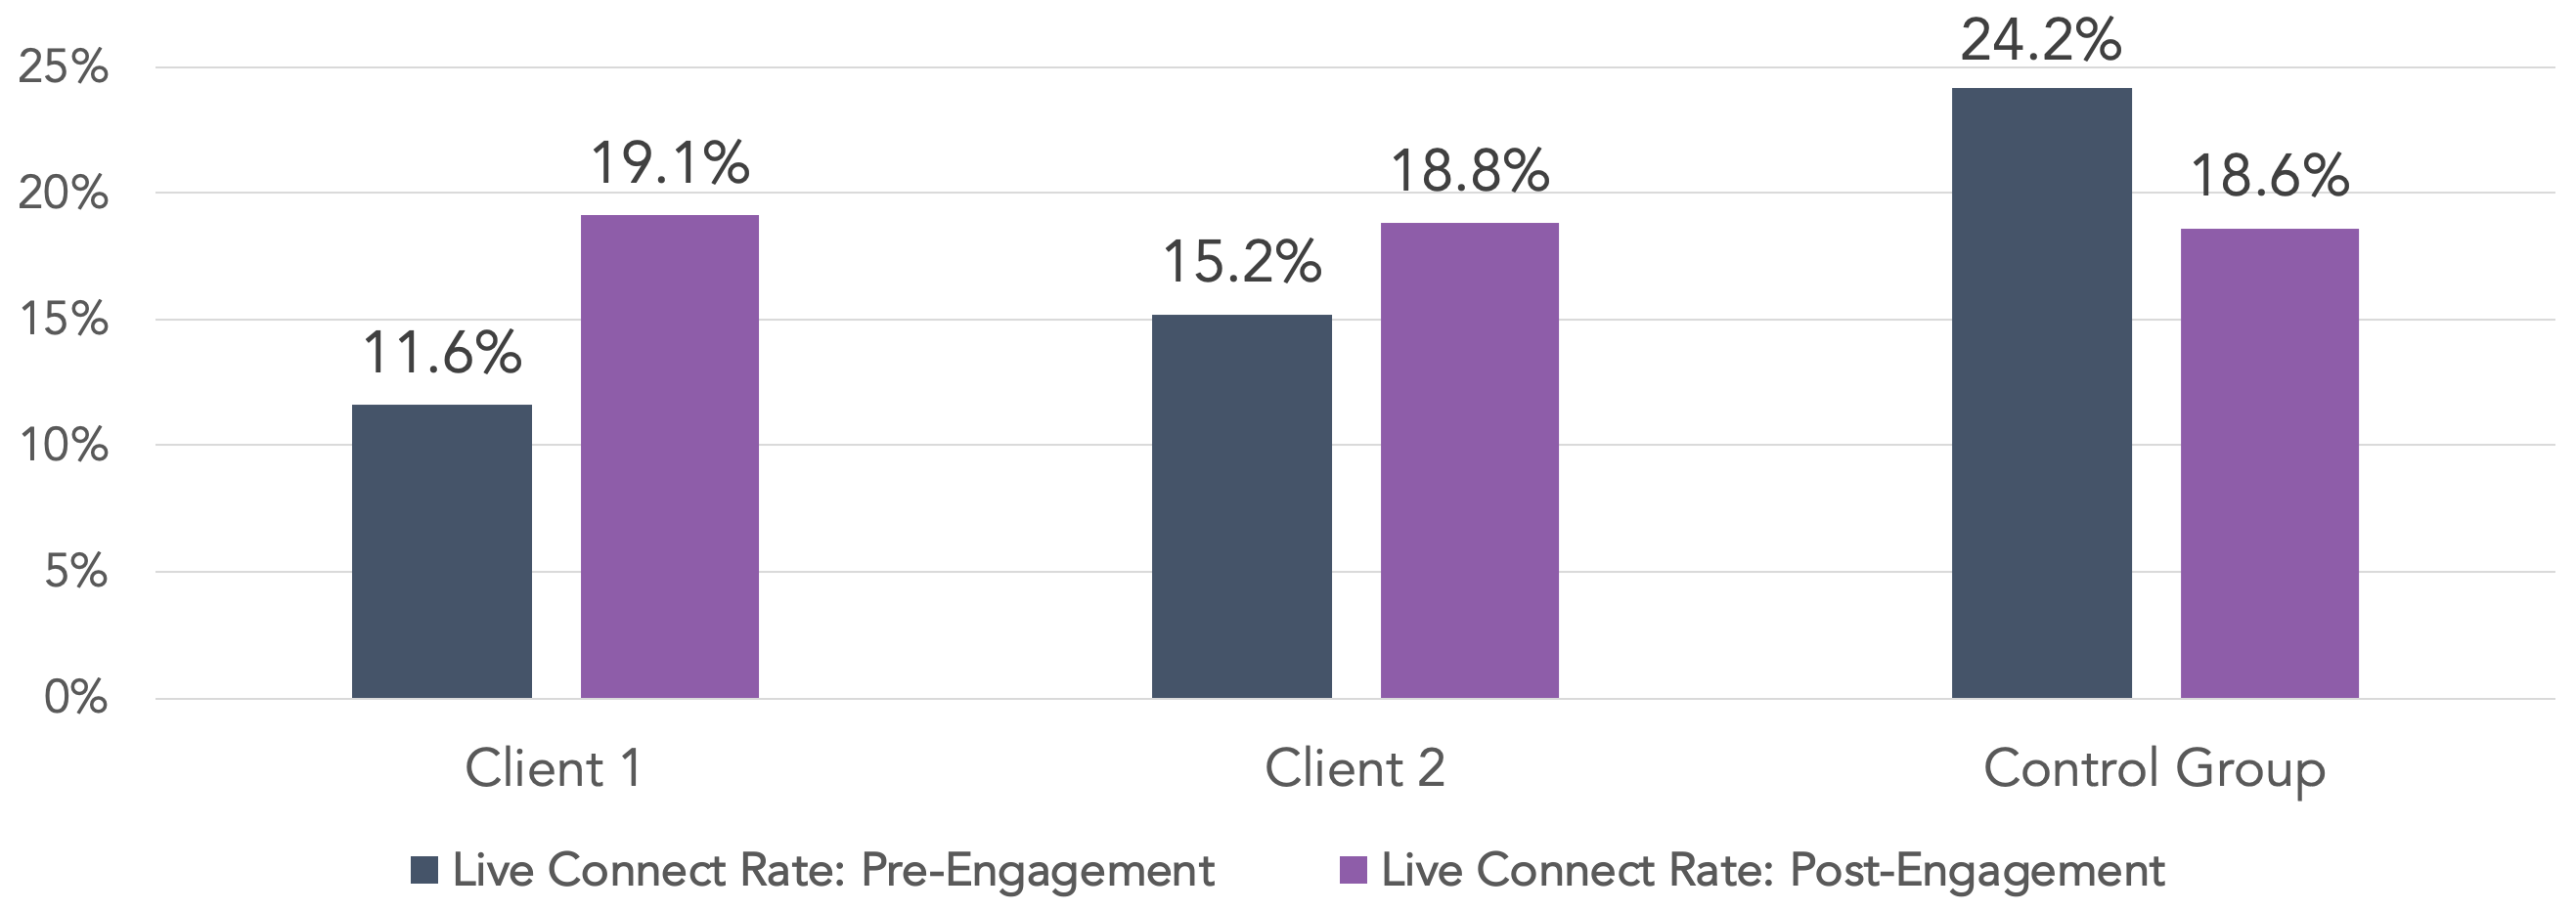 Numeracle Case Study Results